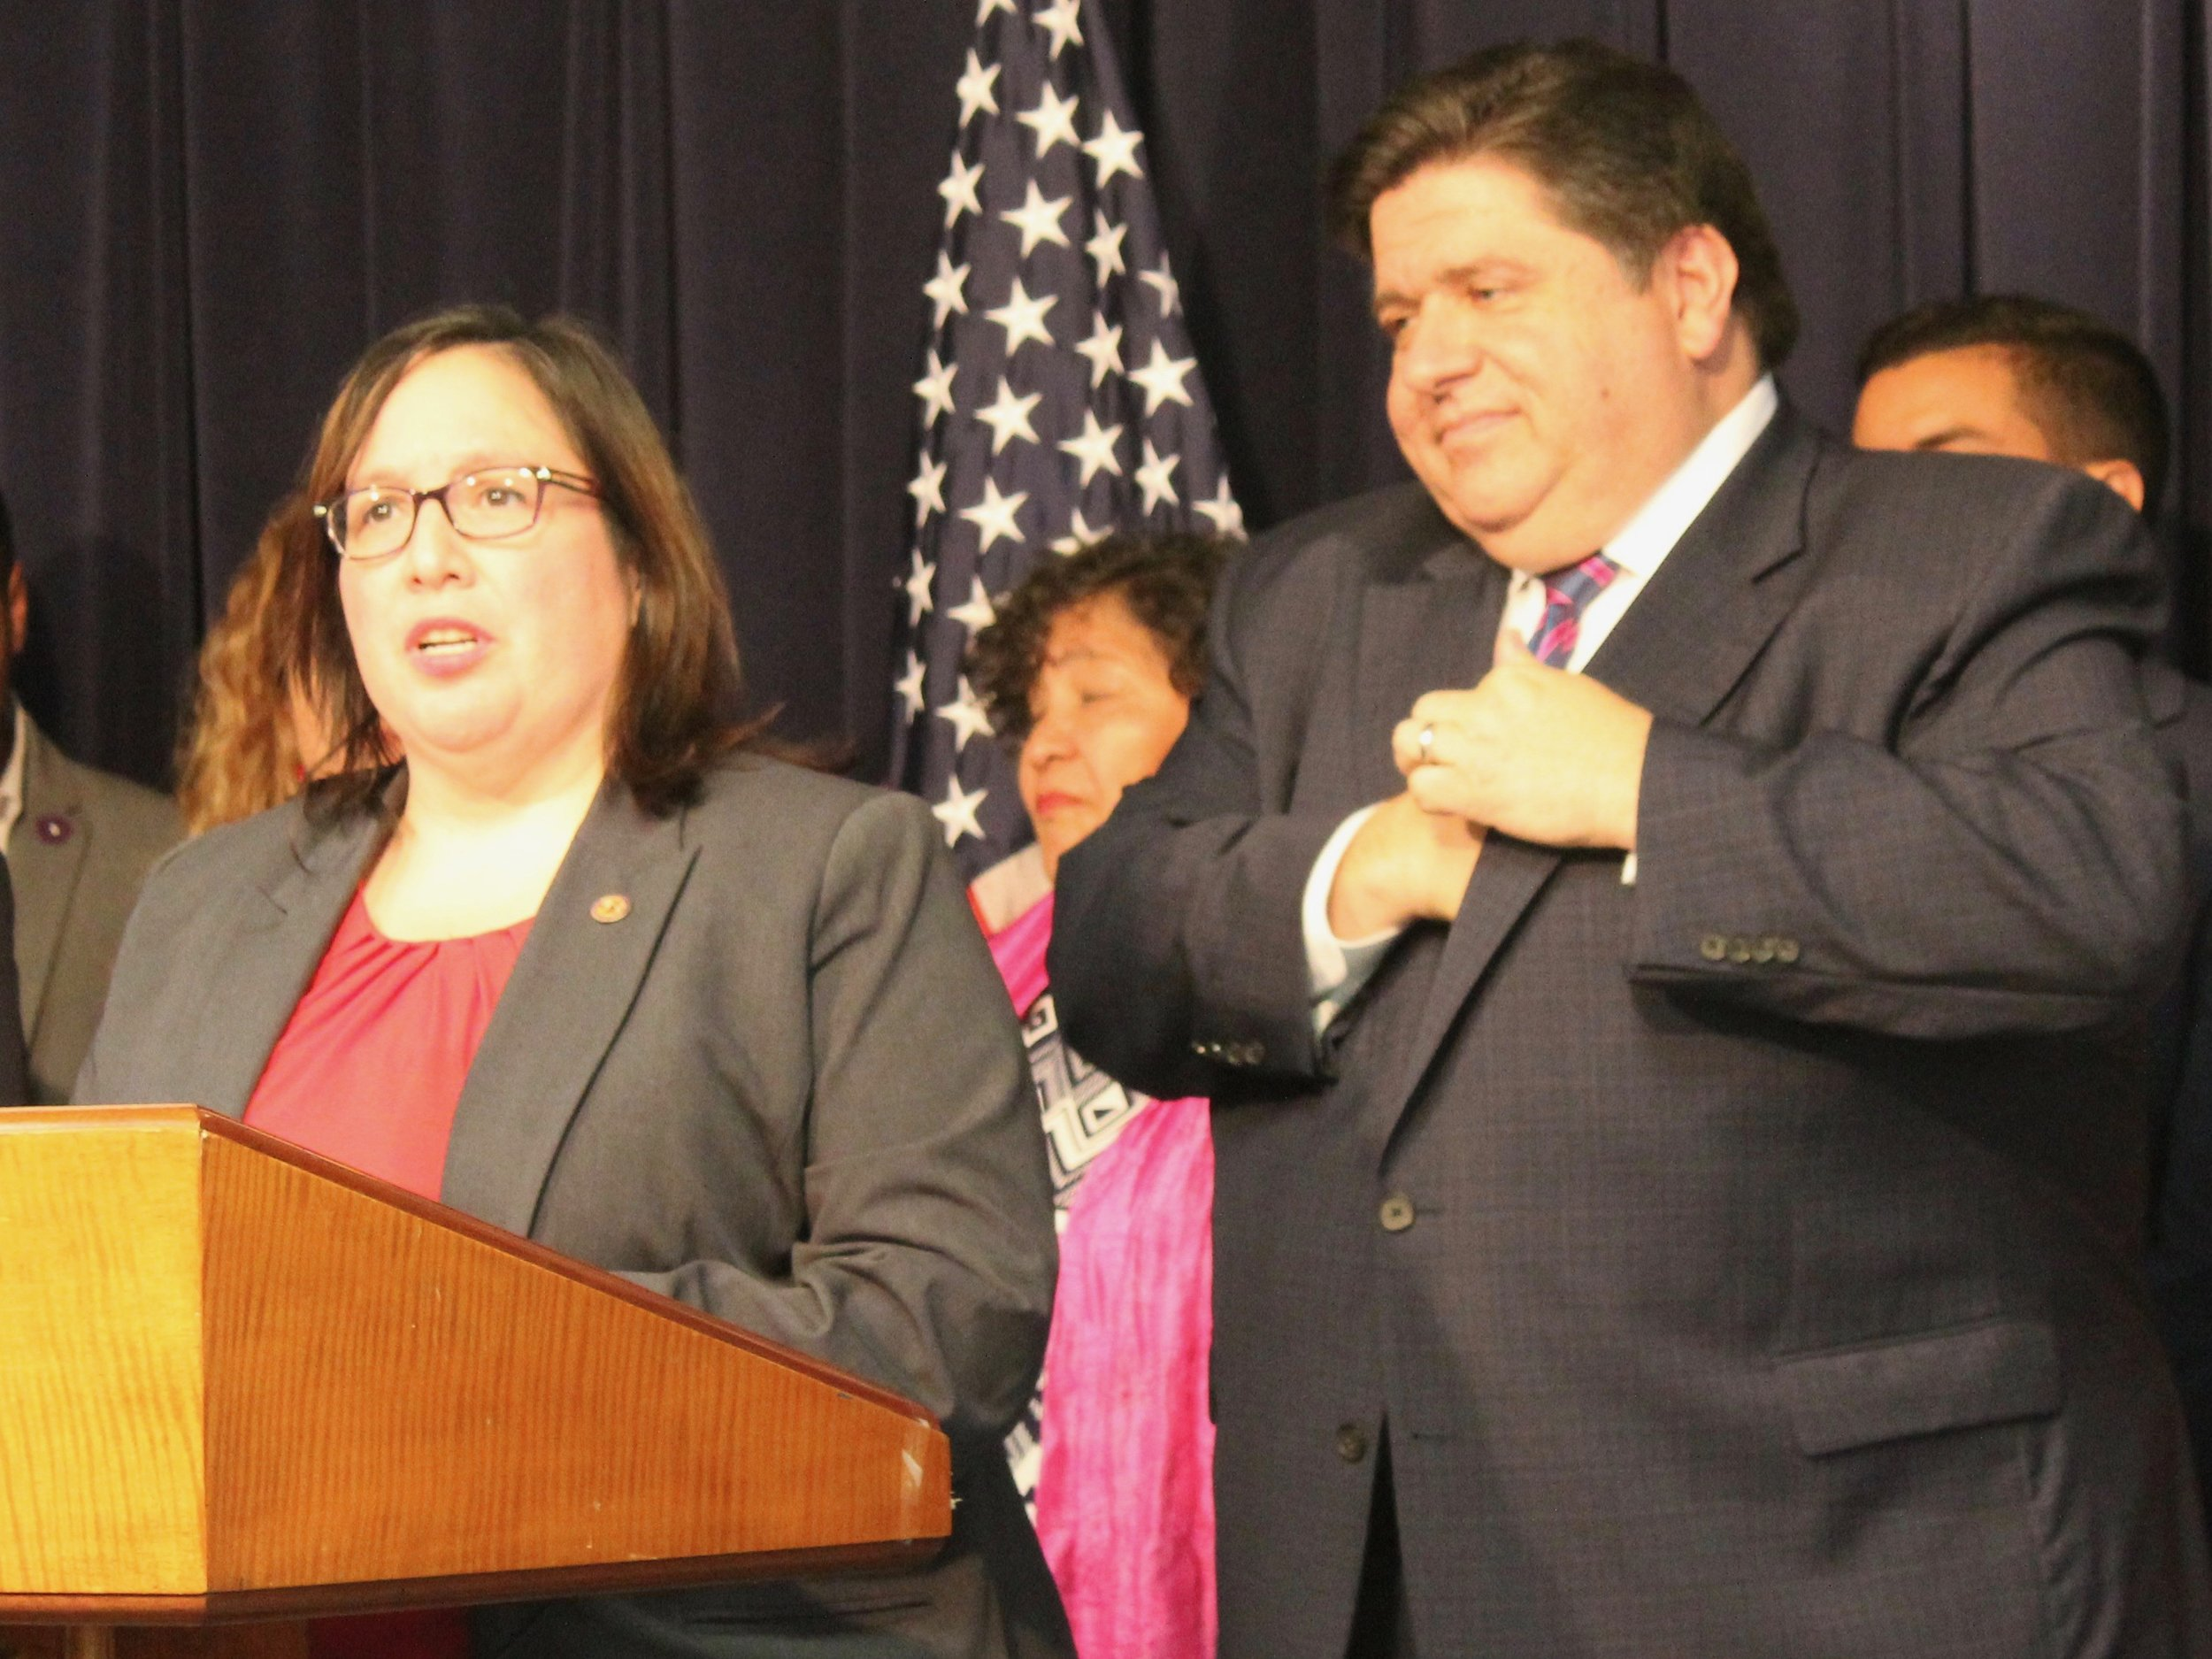 """""""This is essentially a form of blackmail. Quite frankly, it's a shame that this sort of thing even needs to be legislated against."""" - Sen. Cristina Castro (One Illinois/Ted Cox)"""